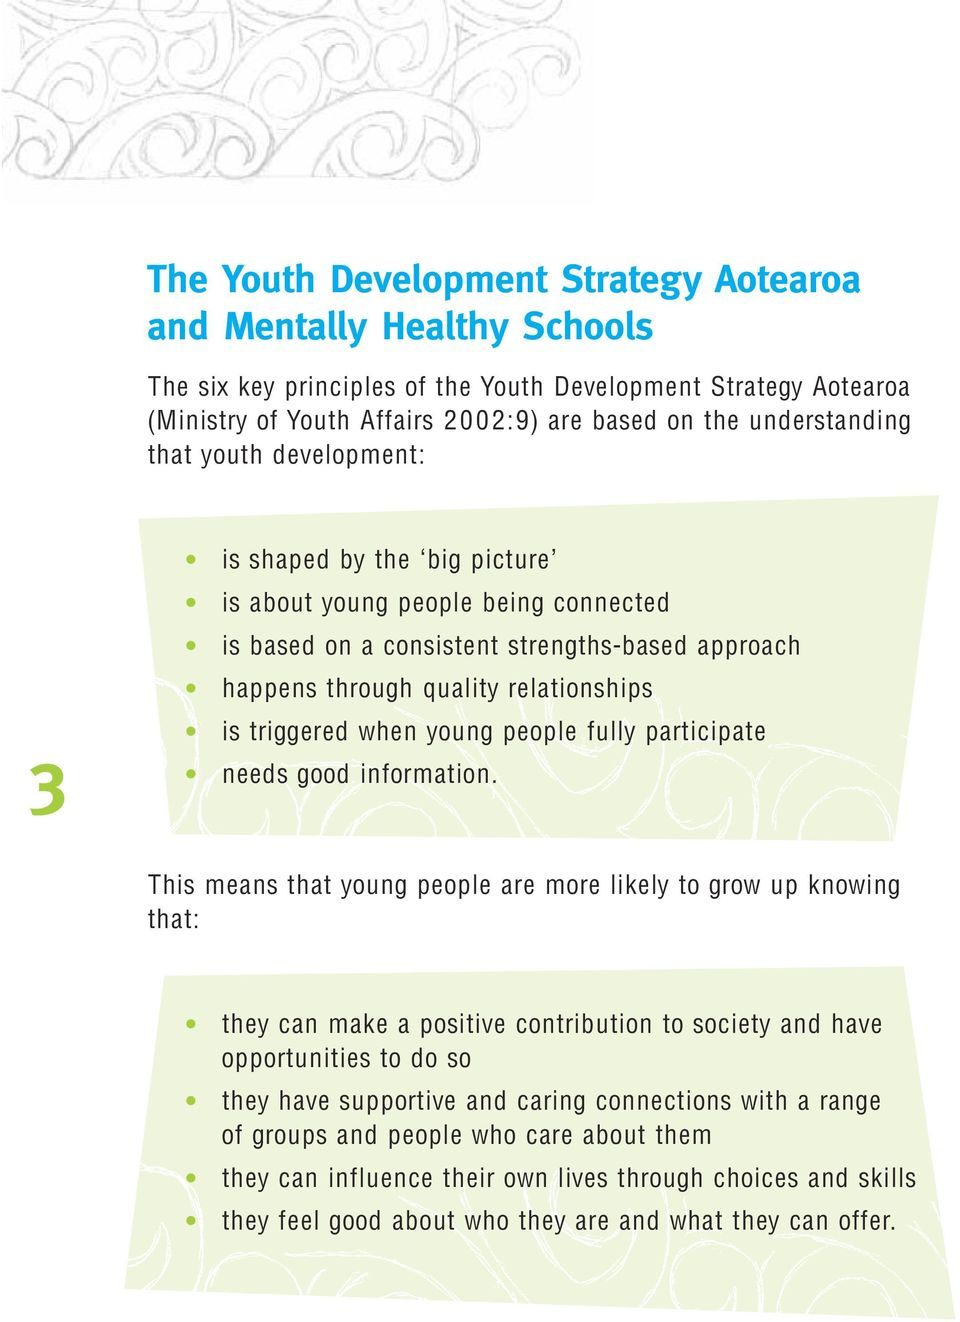 triggered when young people fully participate needs good information.